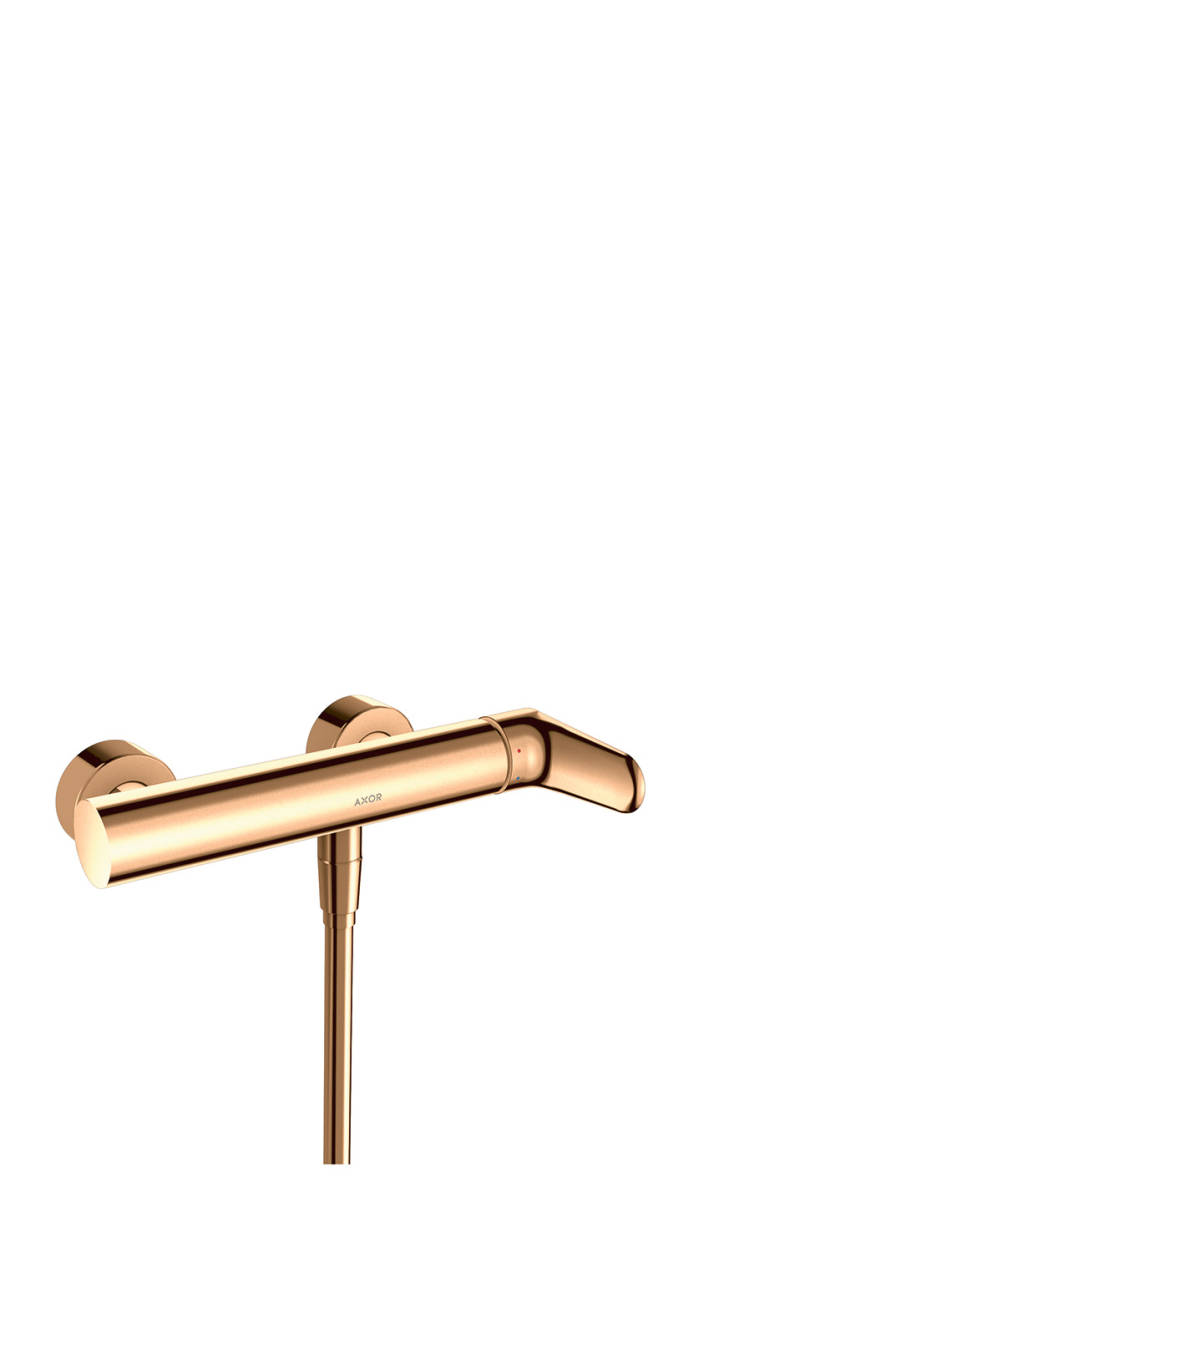 Single lever shower mixer for exposed installation, Polished Bronze, 34620130